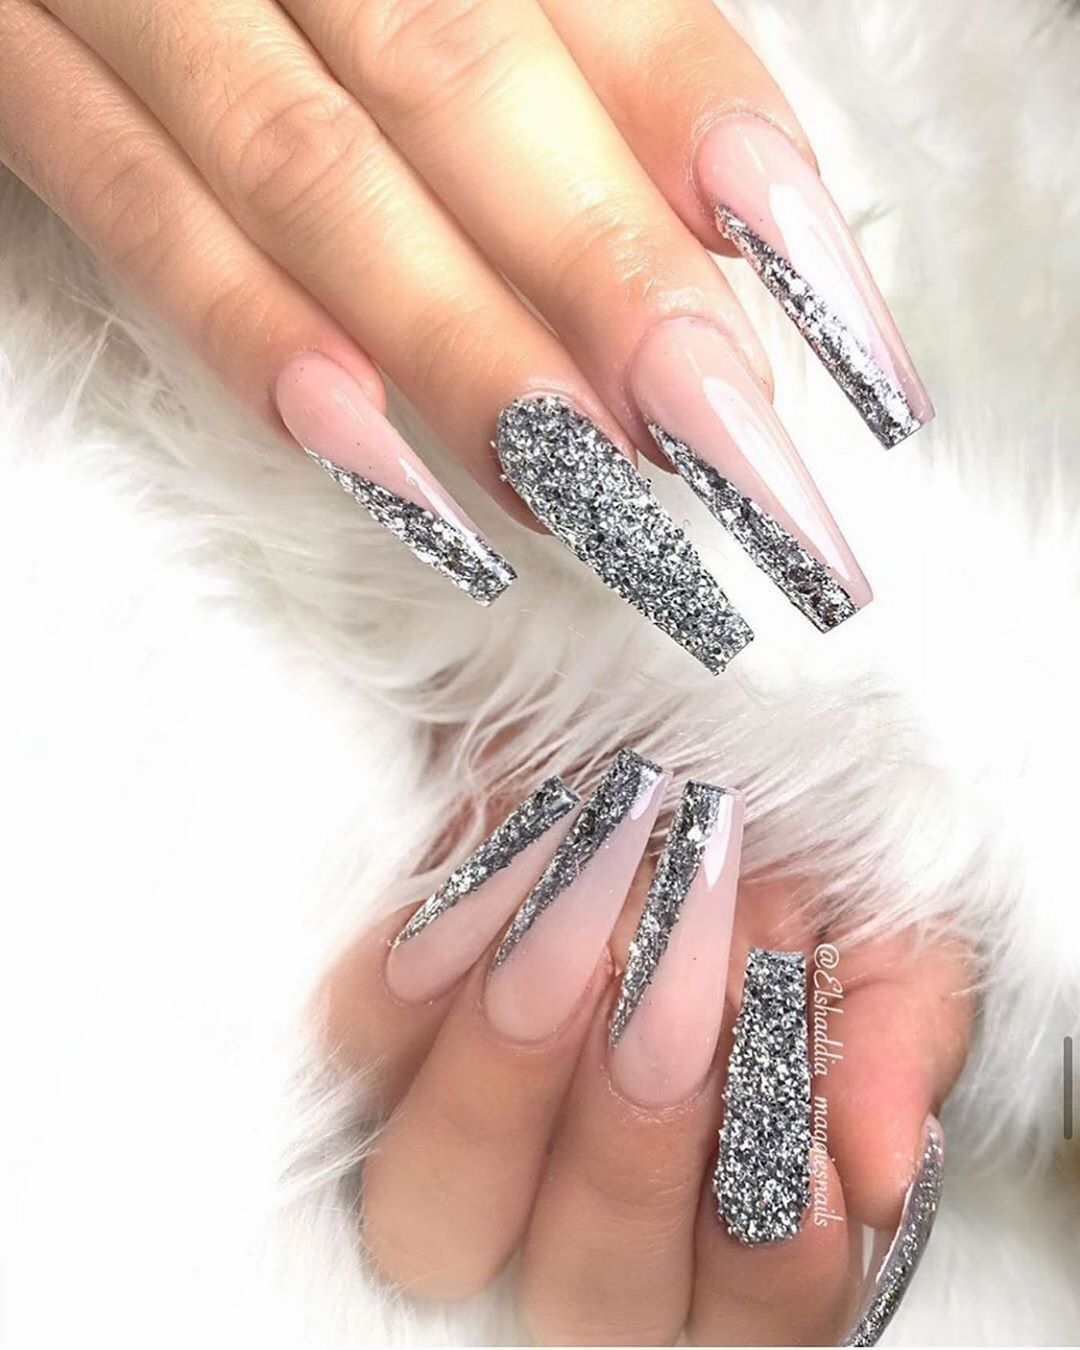 100+ Spring Nail Art Designs for Women 2020 in 2020 New